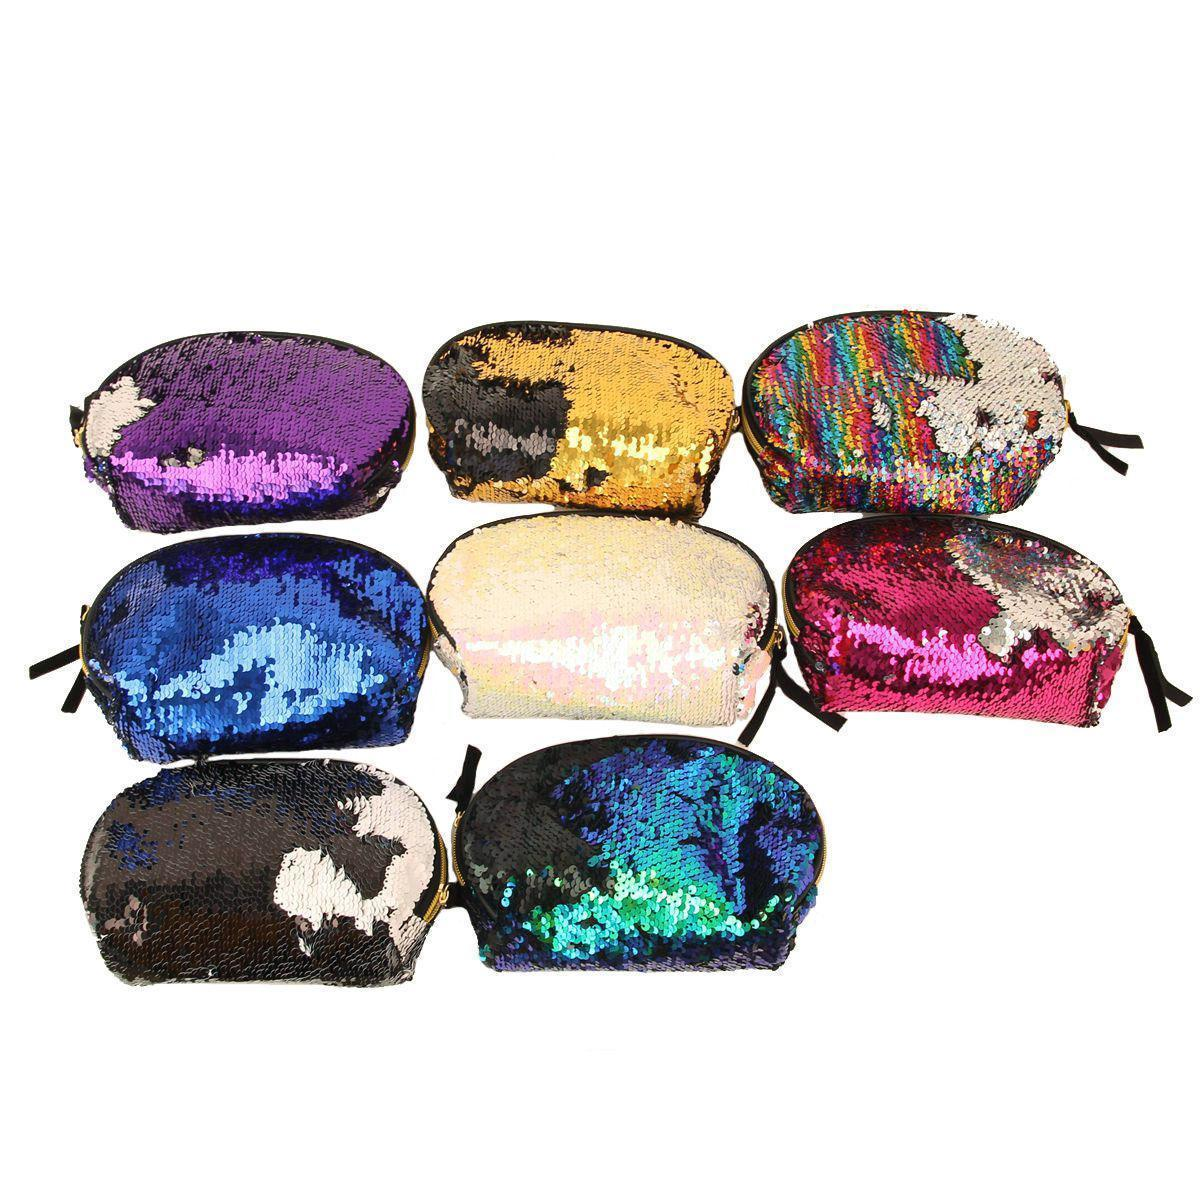 8styles Mermaid Sequin Cosmetic Bag Glitter Makeup Case Purse Bling Storage Organizer Glitter Bling Shell Pouch Wedding Clutch Bag Ffa562